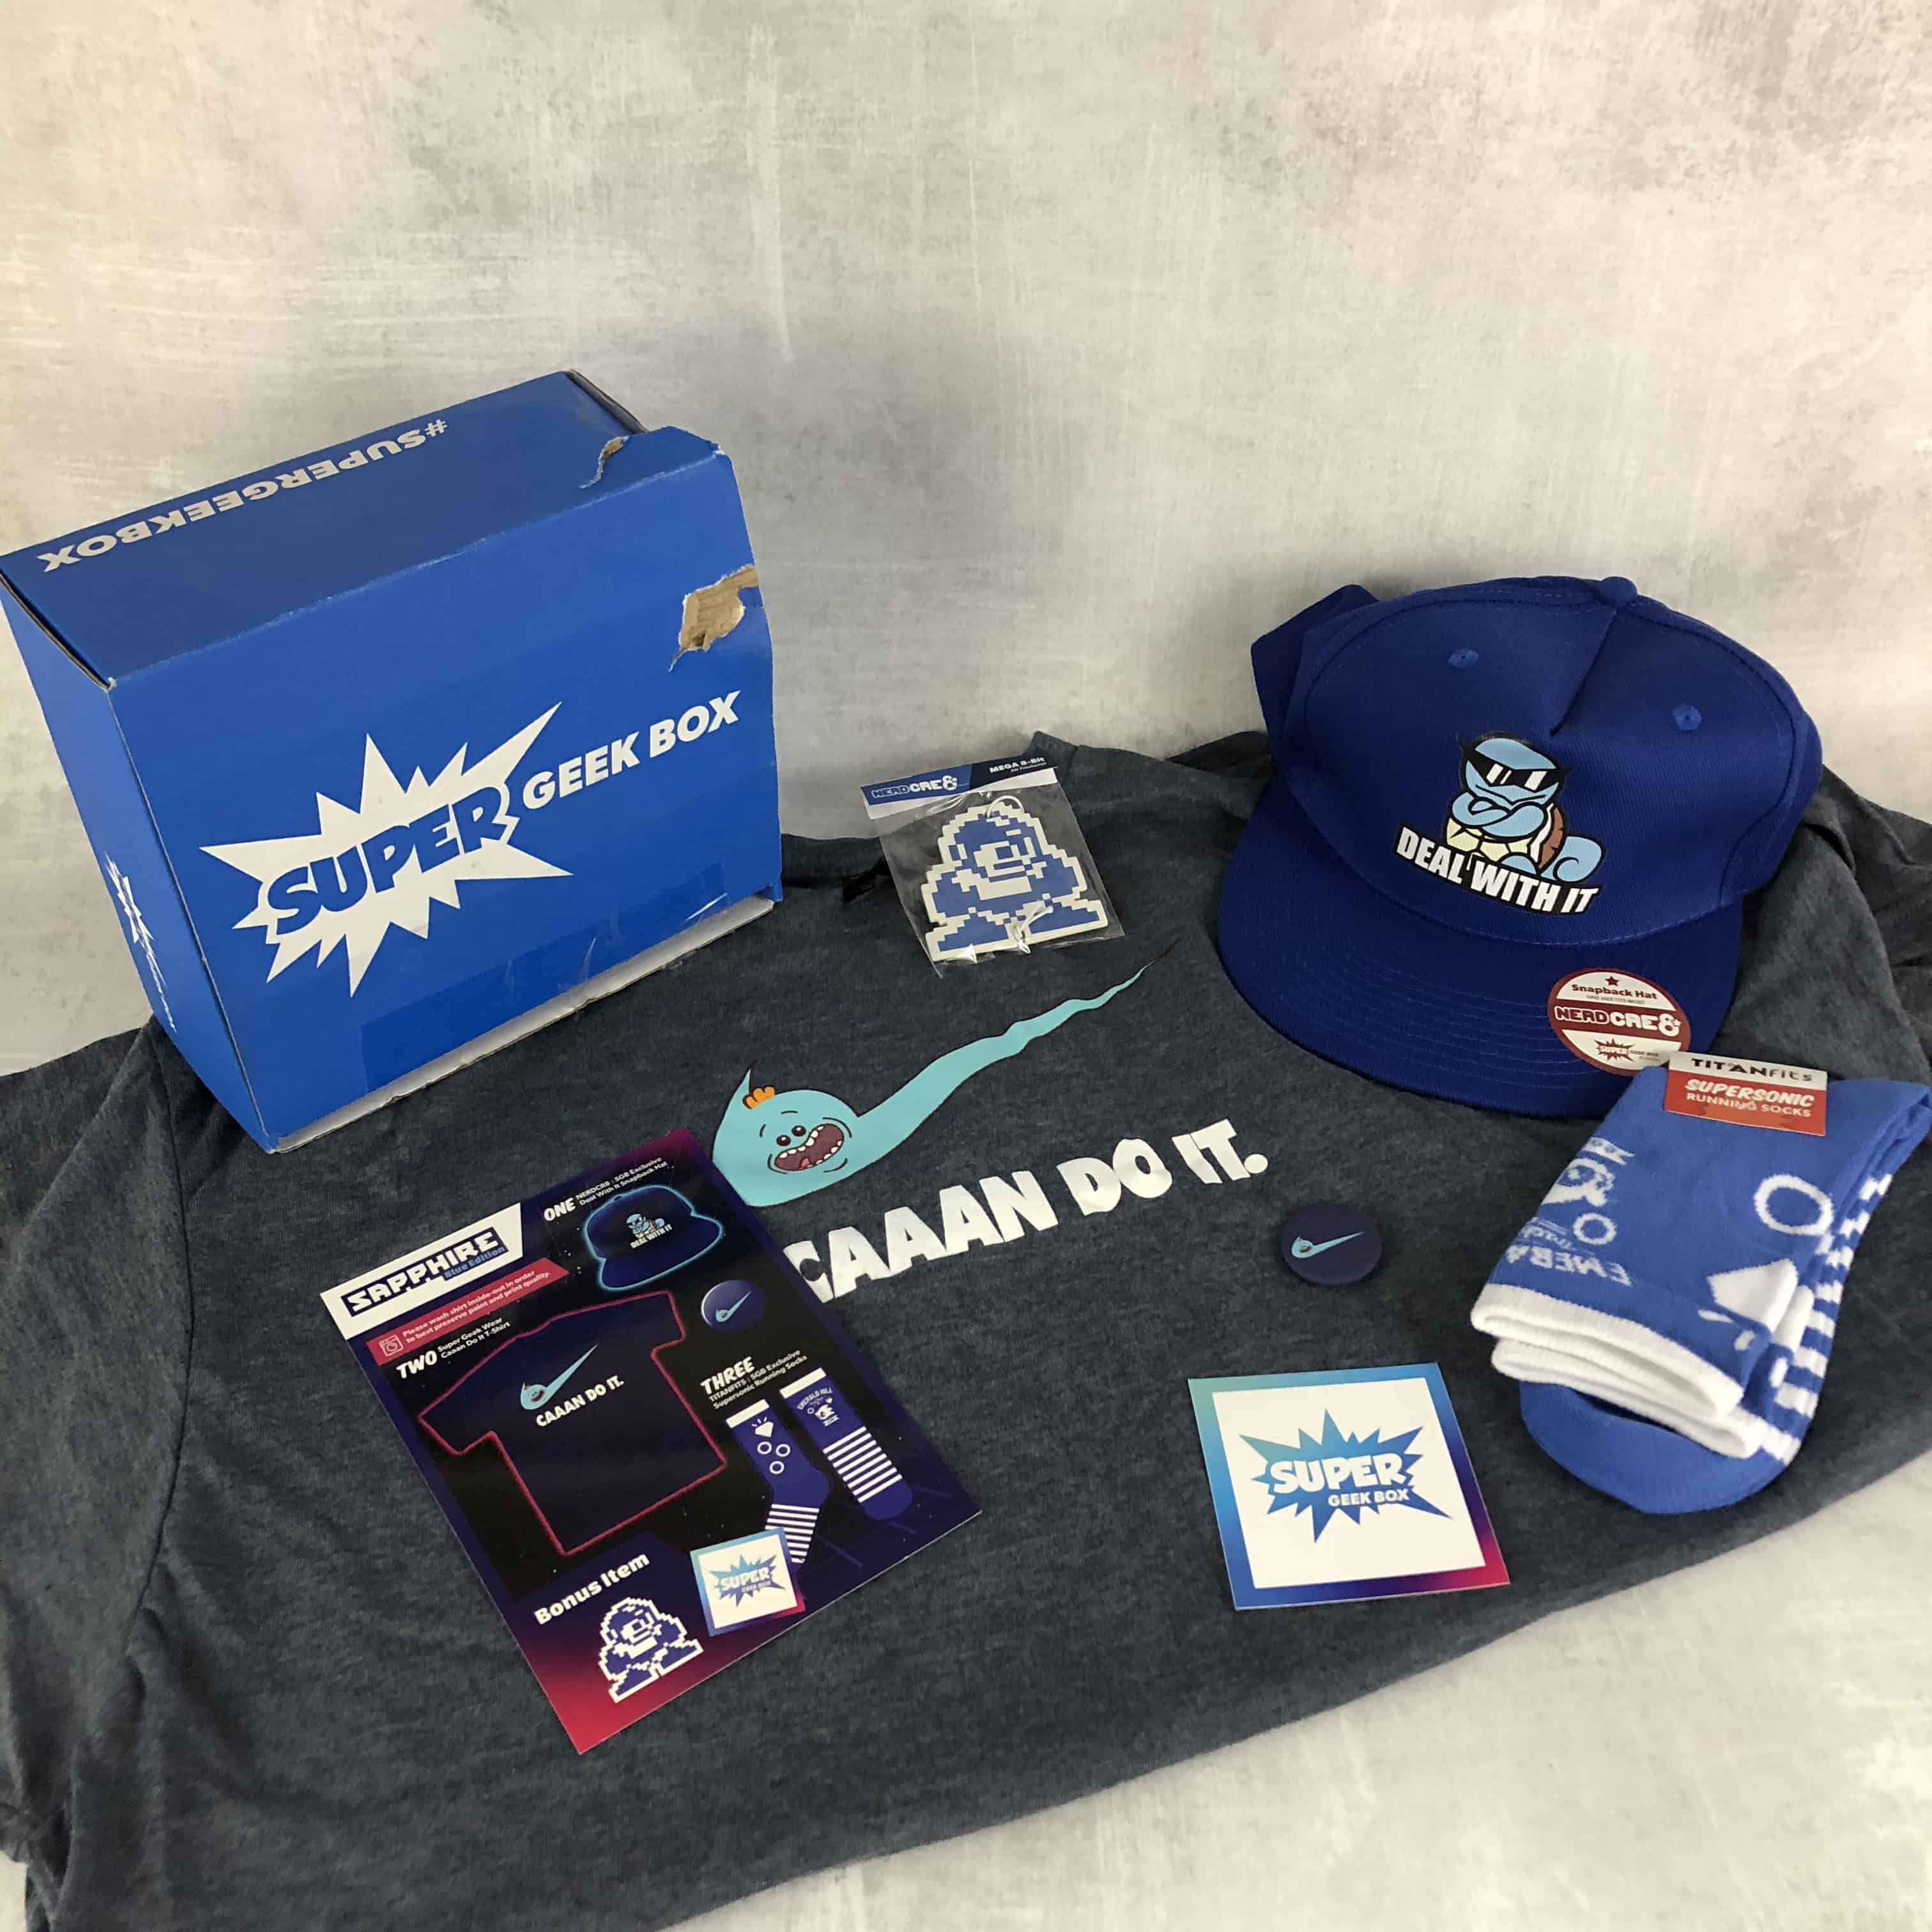 Super Geek Box February 2018 Subscription Box Review & Coupon